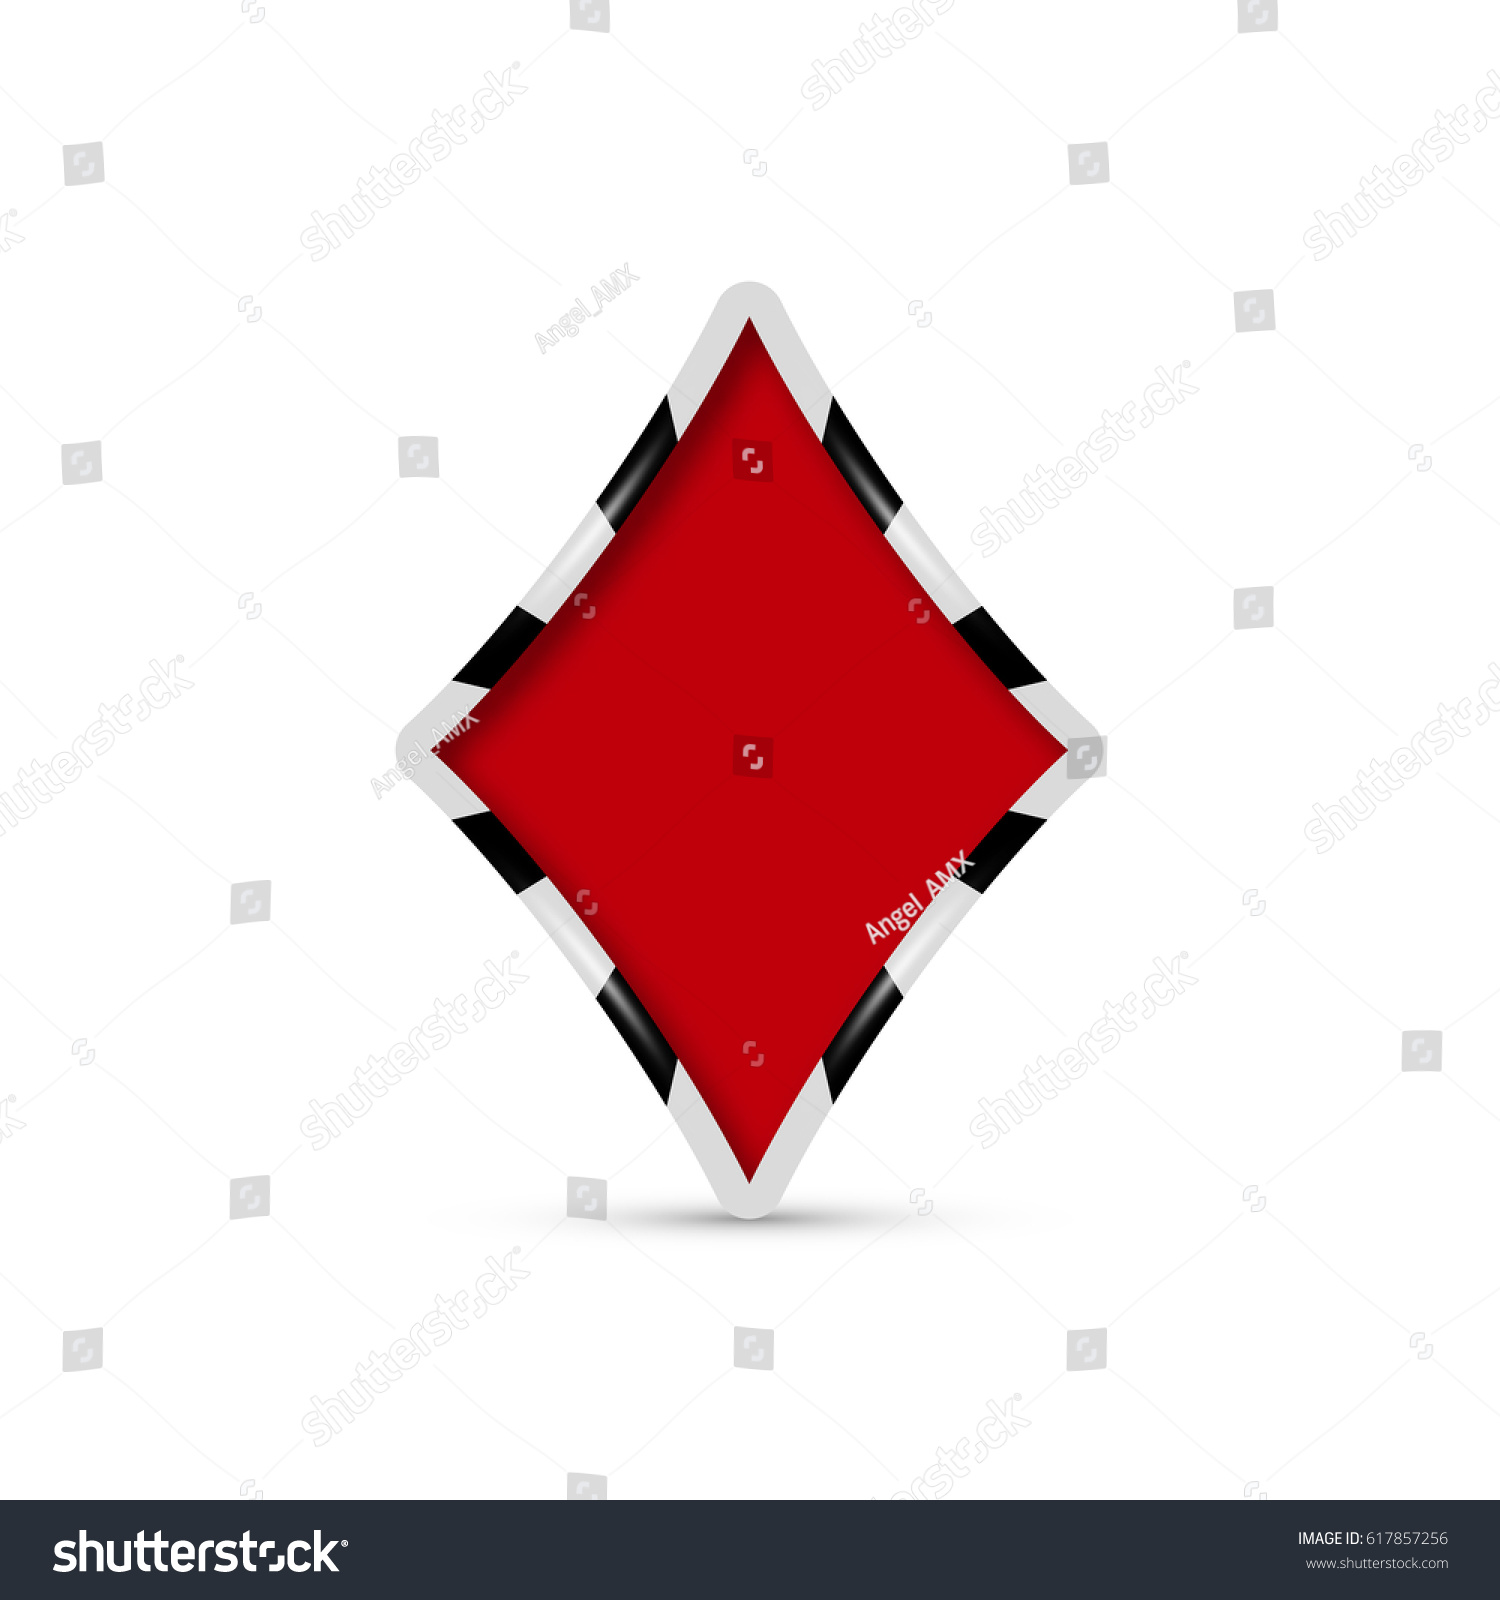 stock diamonds of image ace with card vector diamond shutterstock